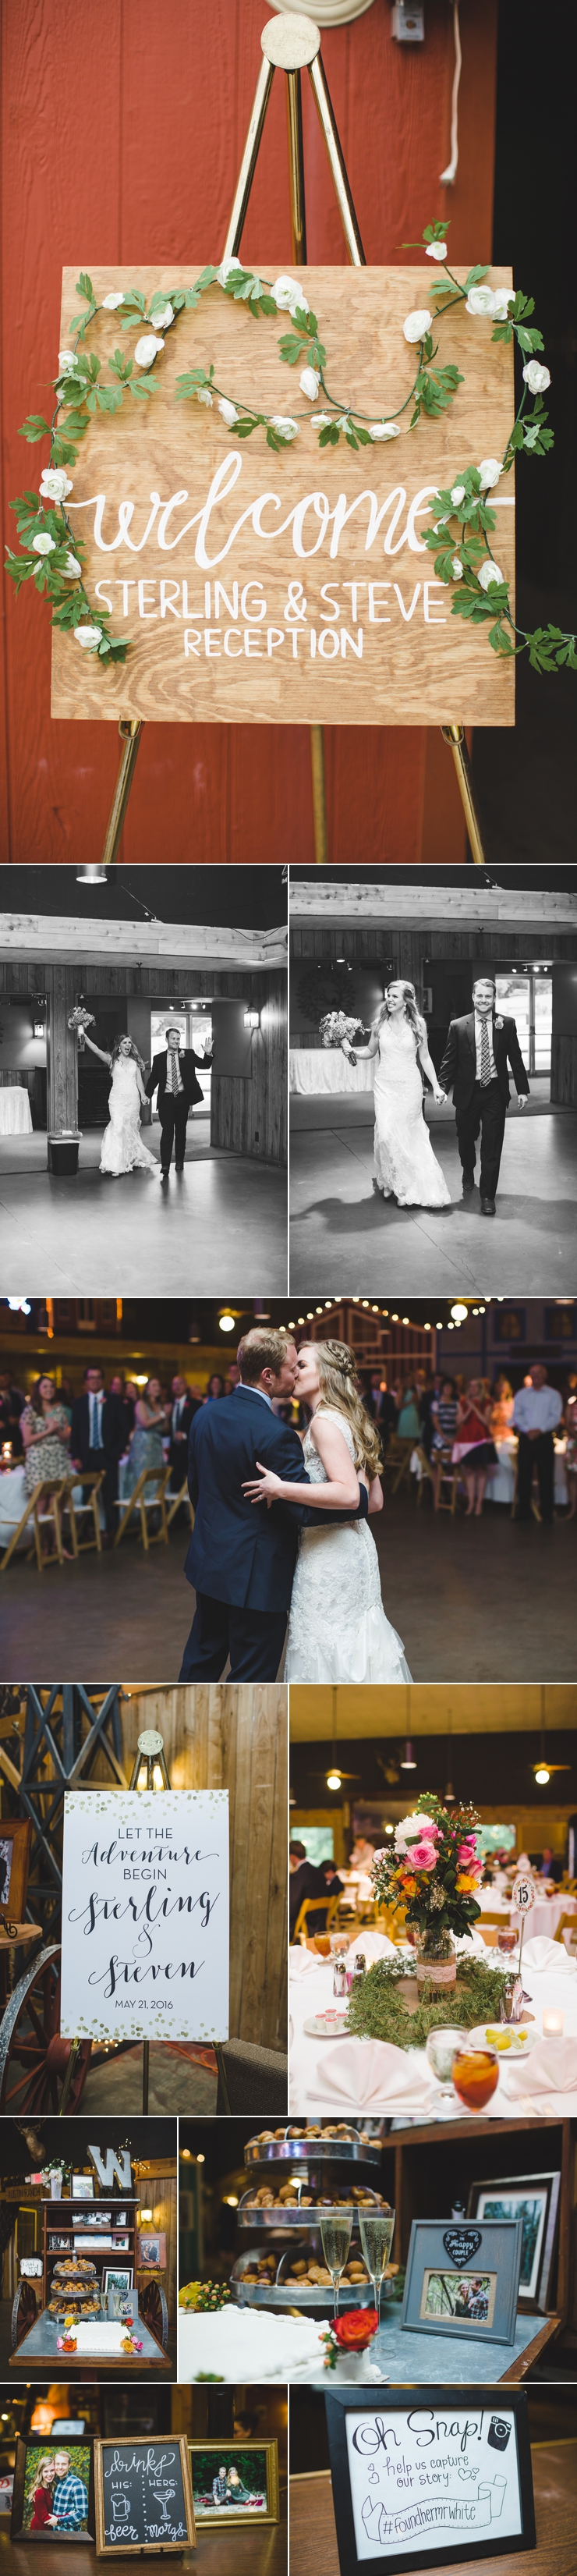 White Wedding - Blog Collages 14.jpg